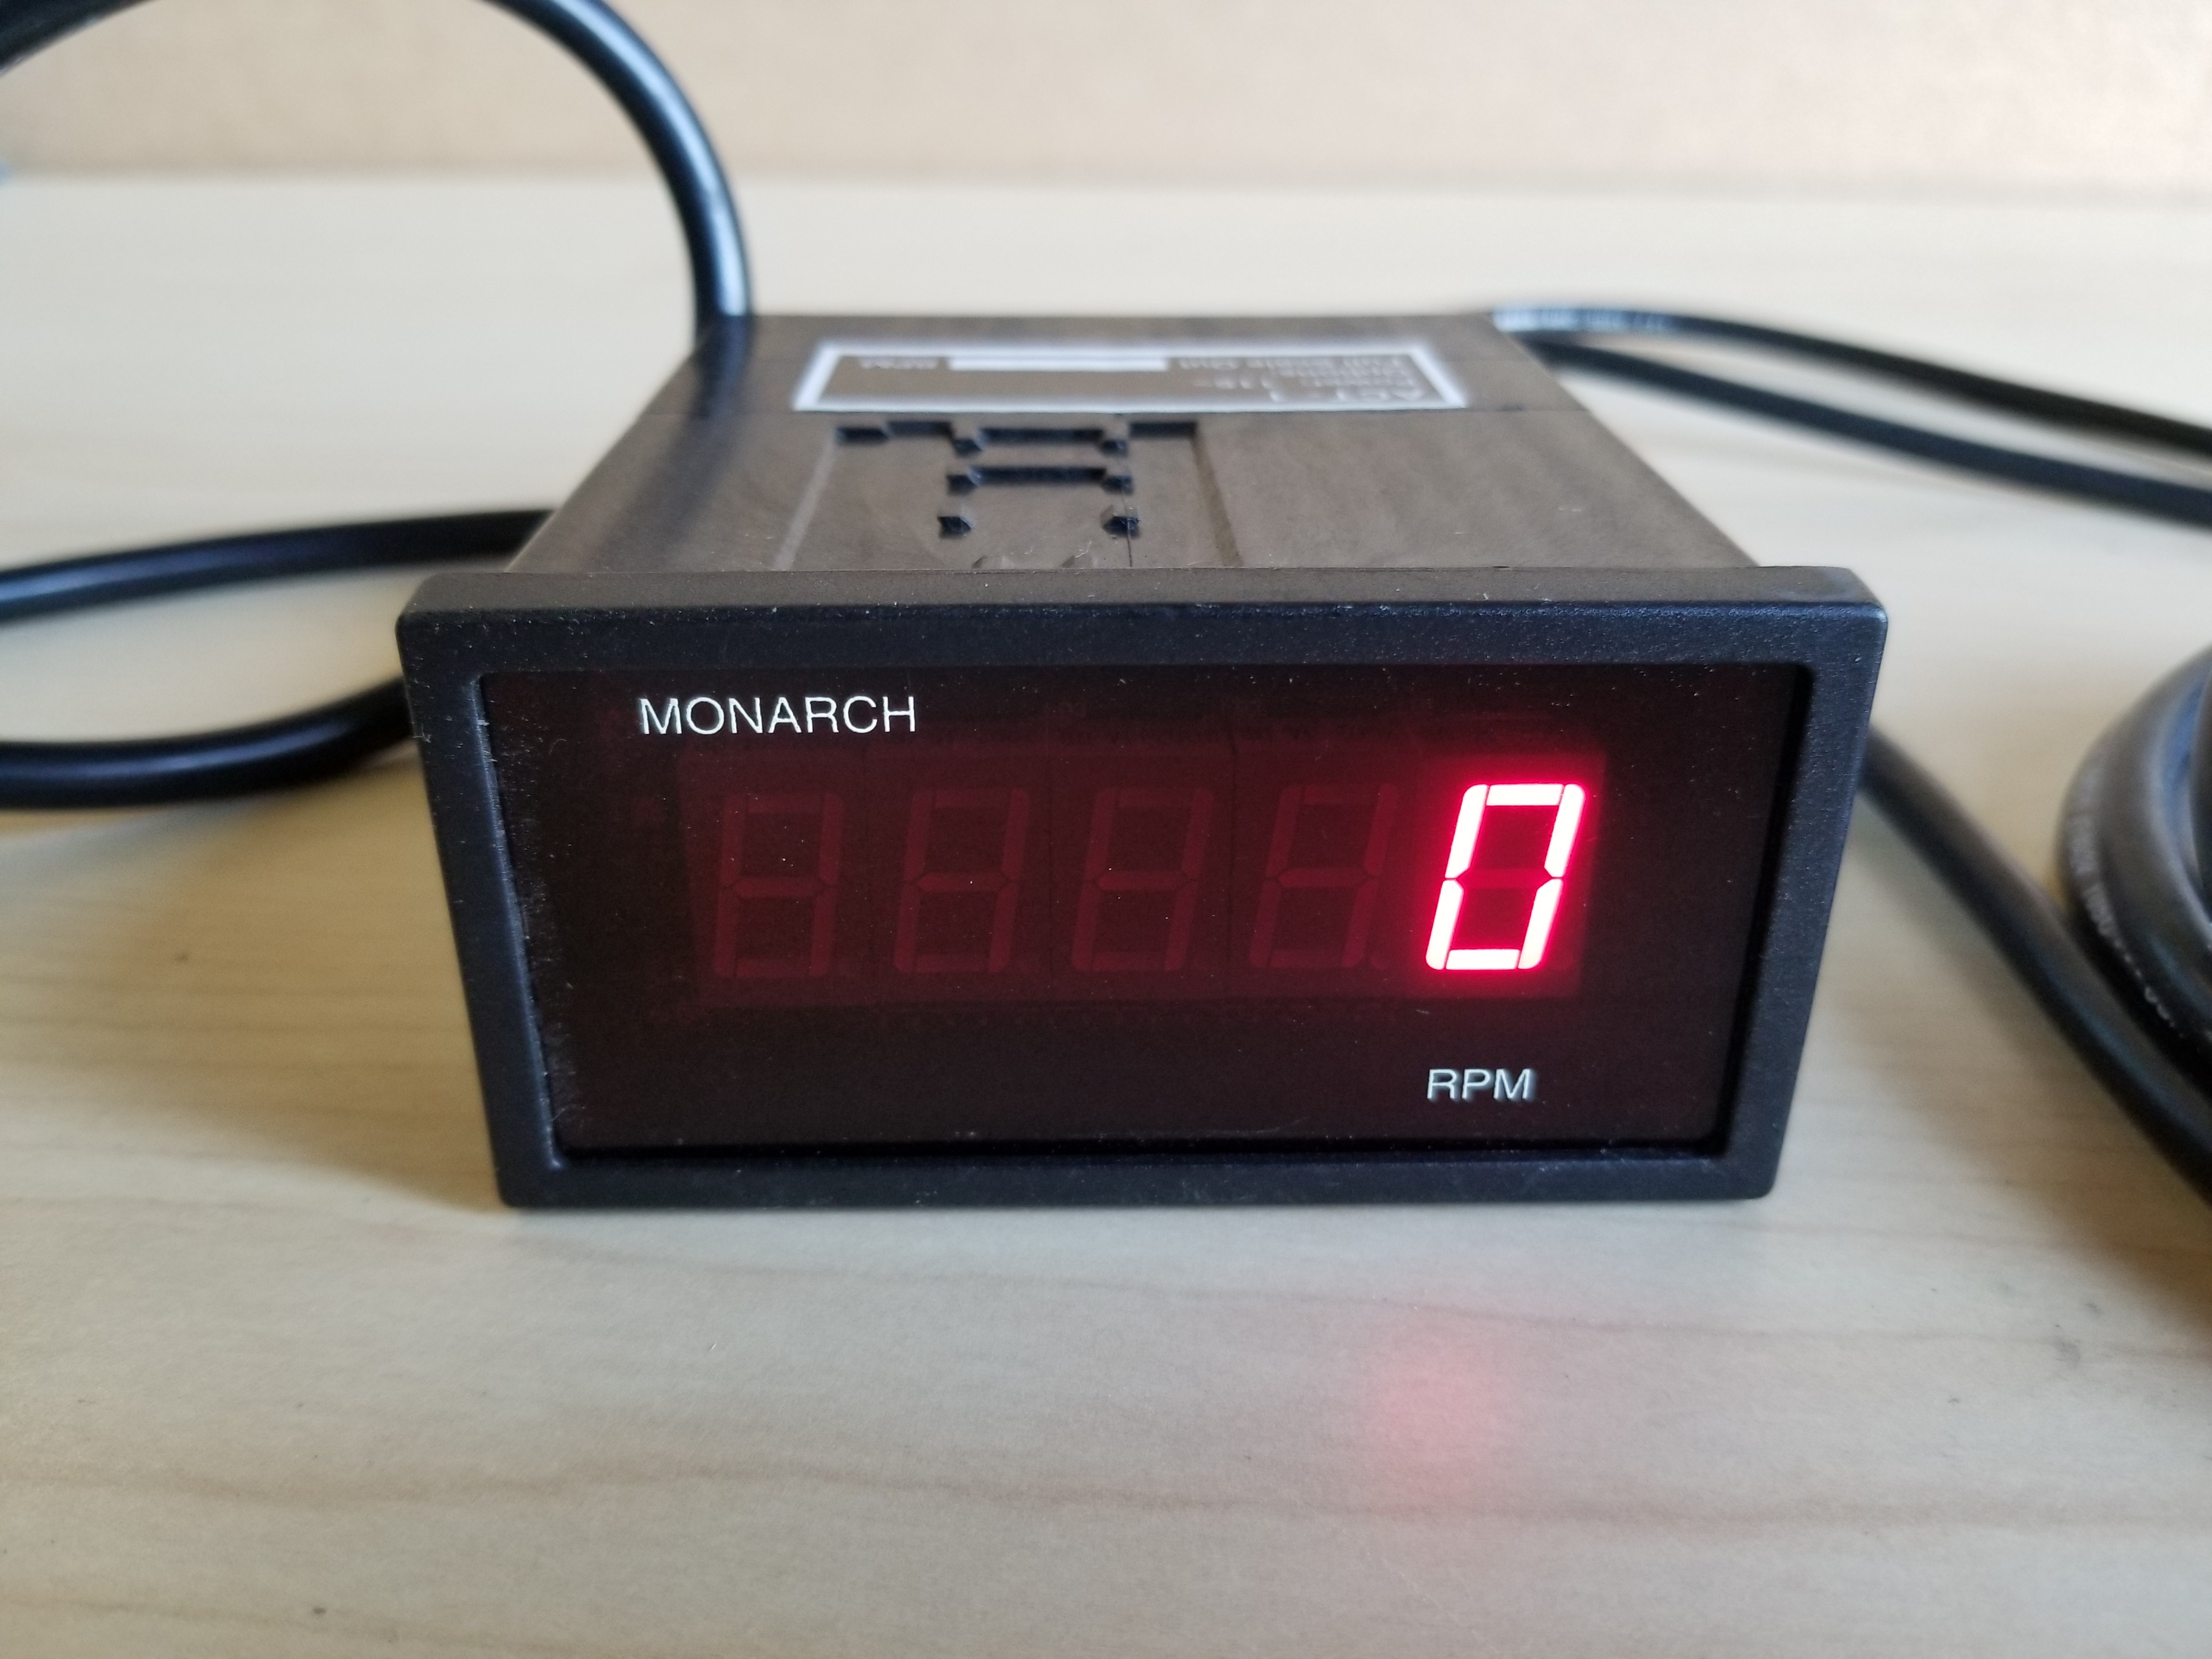 Monarch Digital Tachometer Panel Meter & Remote Optical LED Sensor - Image 11 of 16